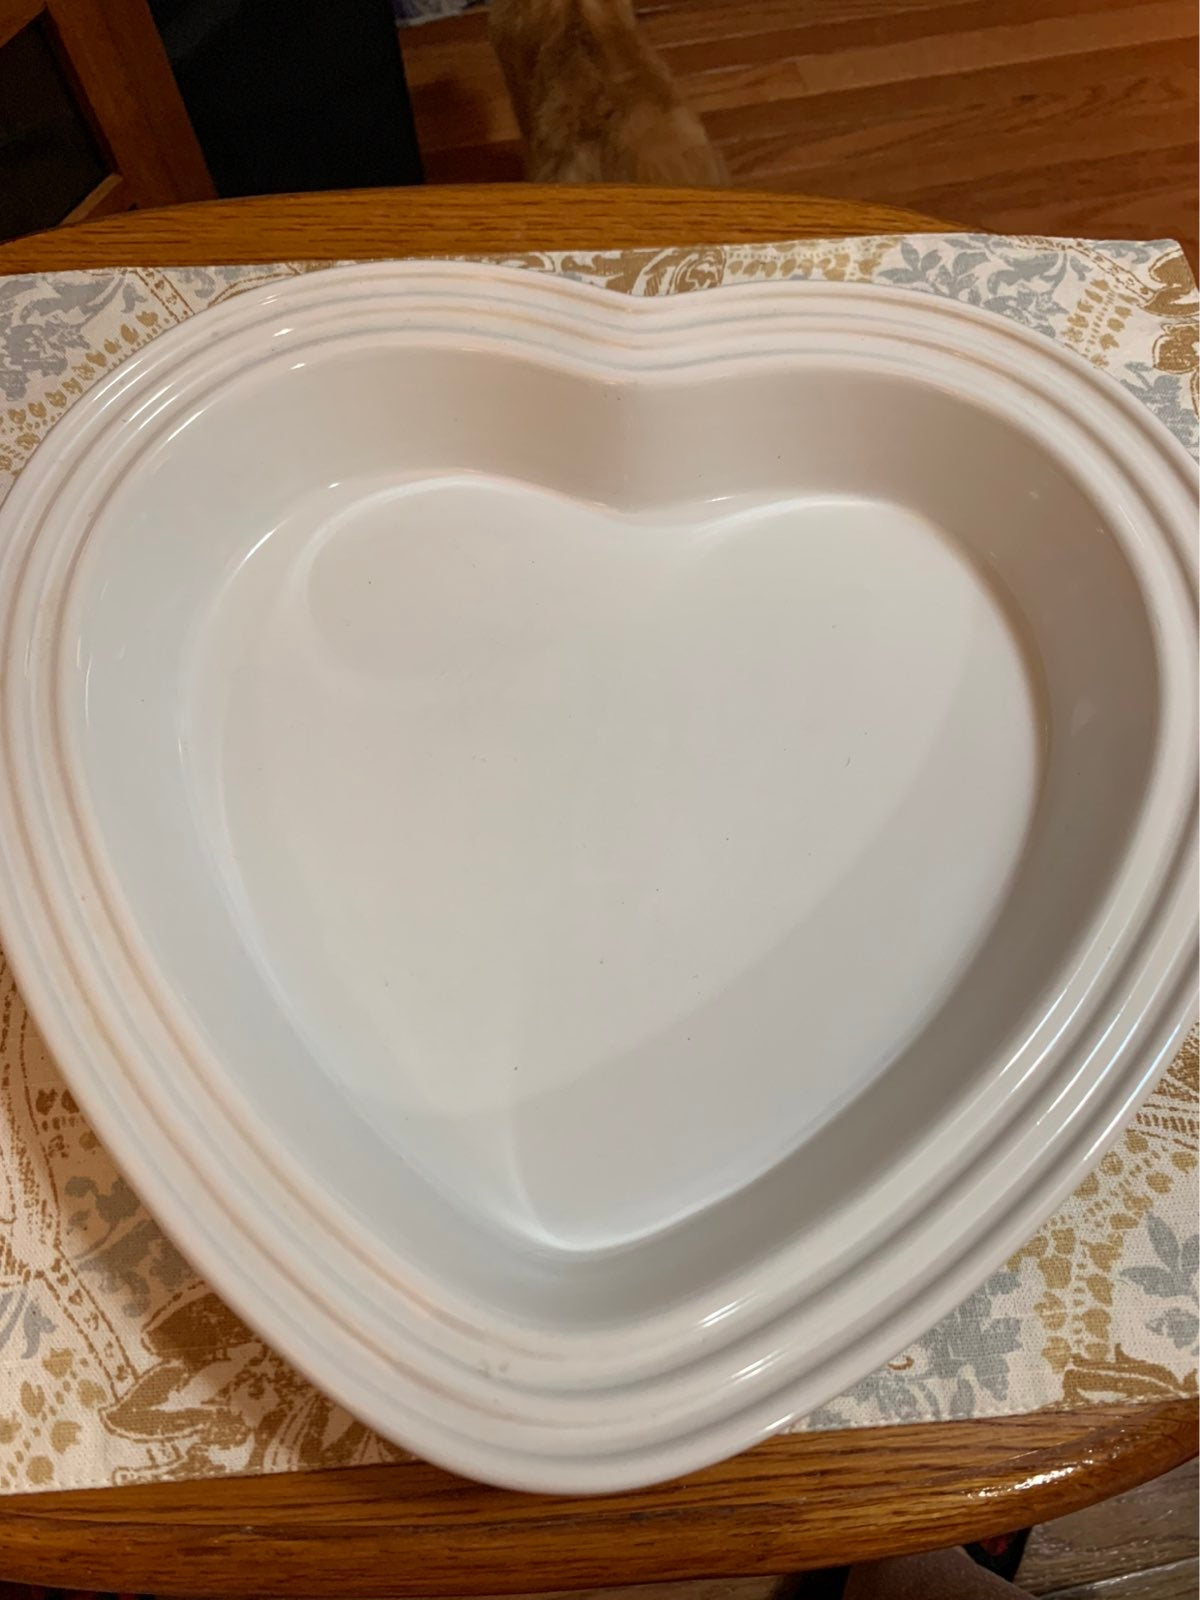 Le Creuset Heart Shaped Casserole